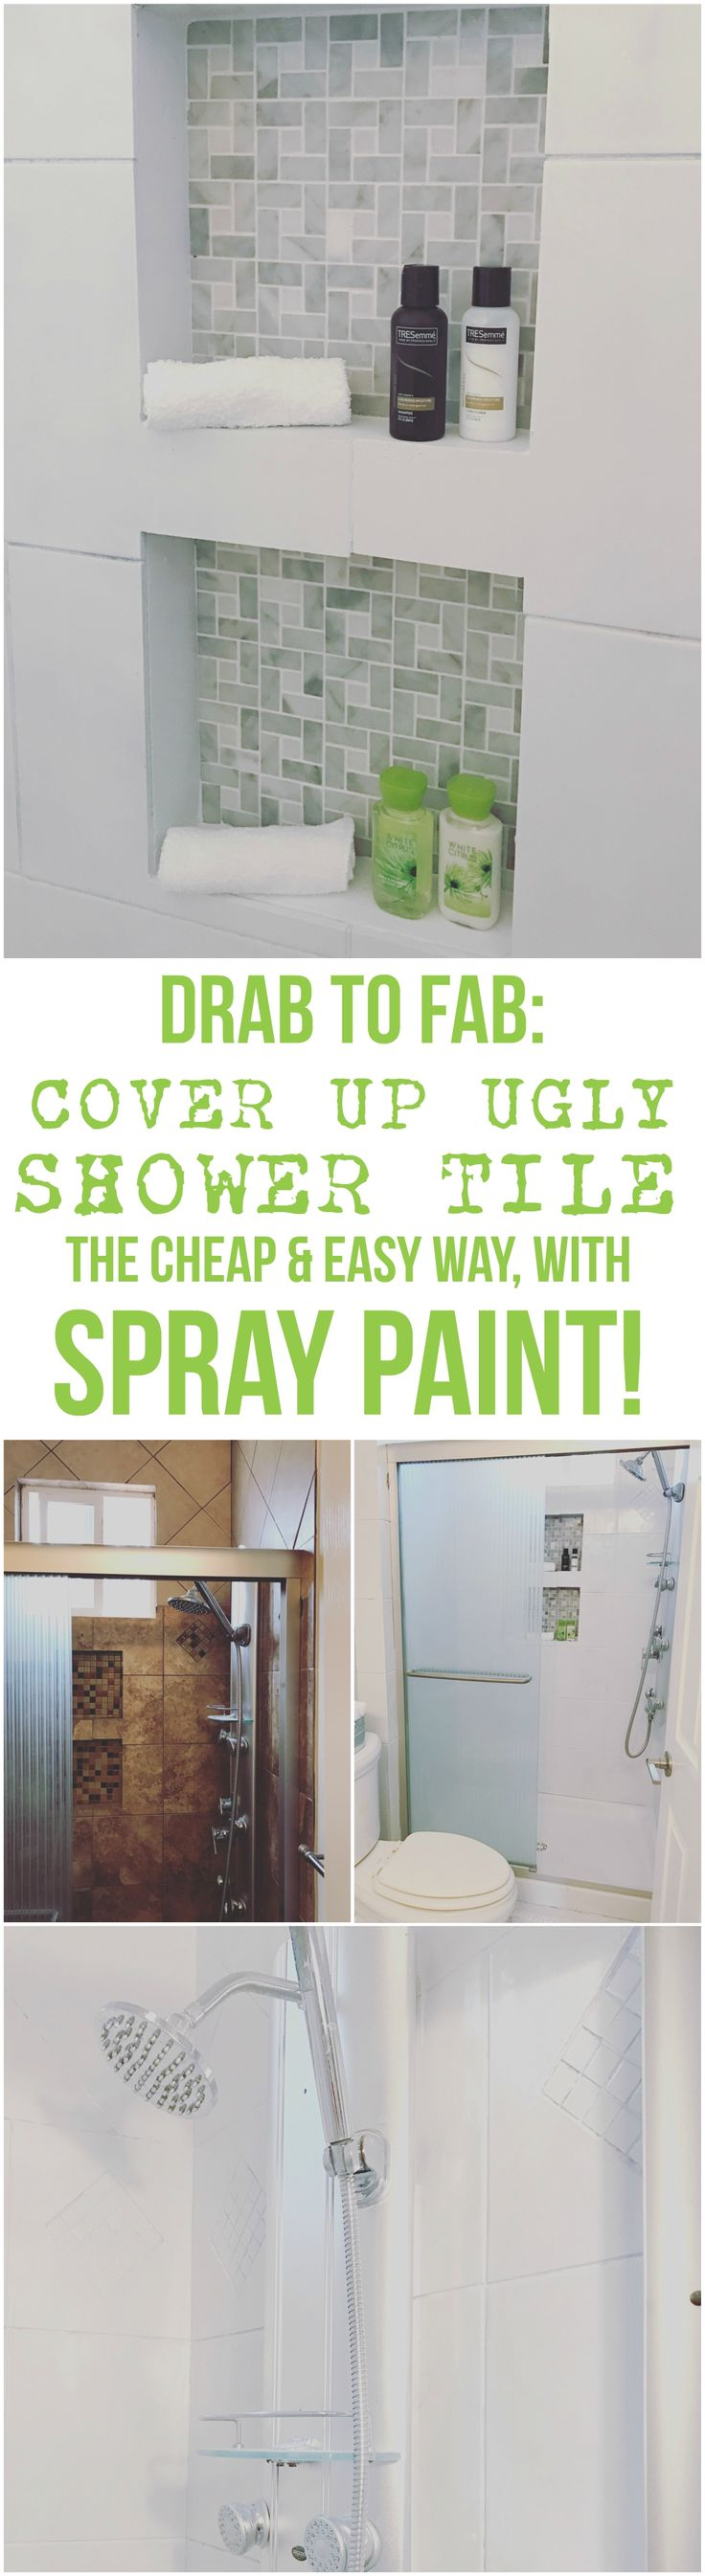 Cheap & Easy Shower Makeover with Spray Paint! Here's how we used Rust-Oleum epoxy spray paint to give our shower an instant makeover!